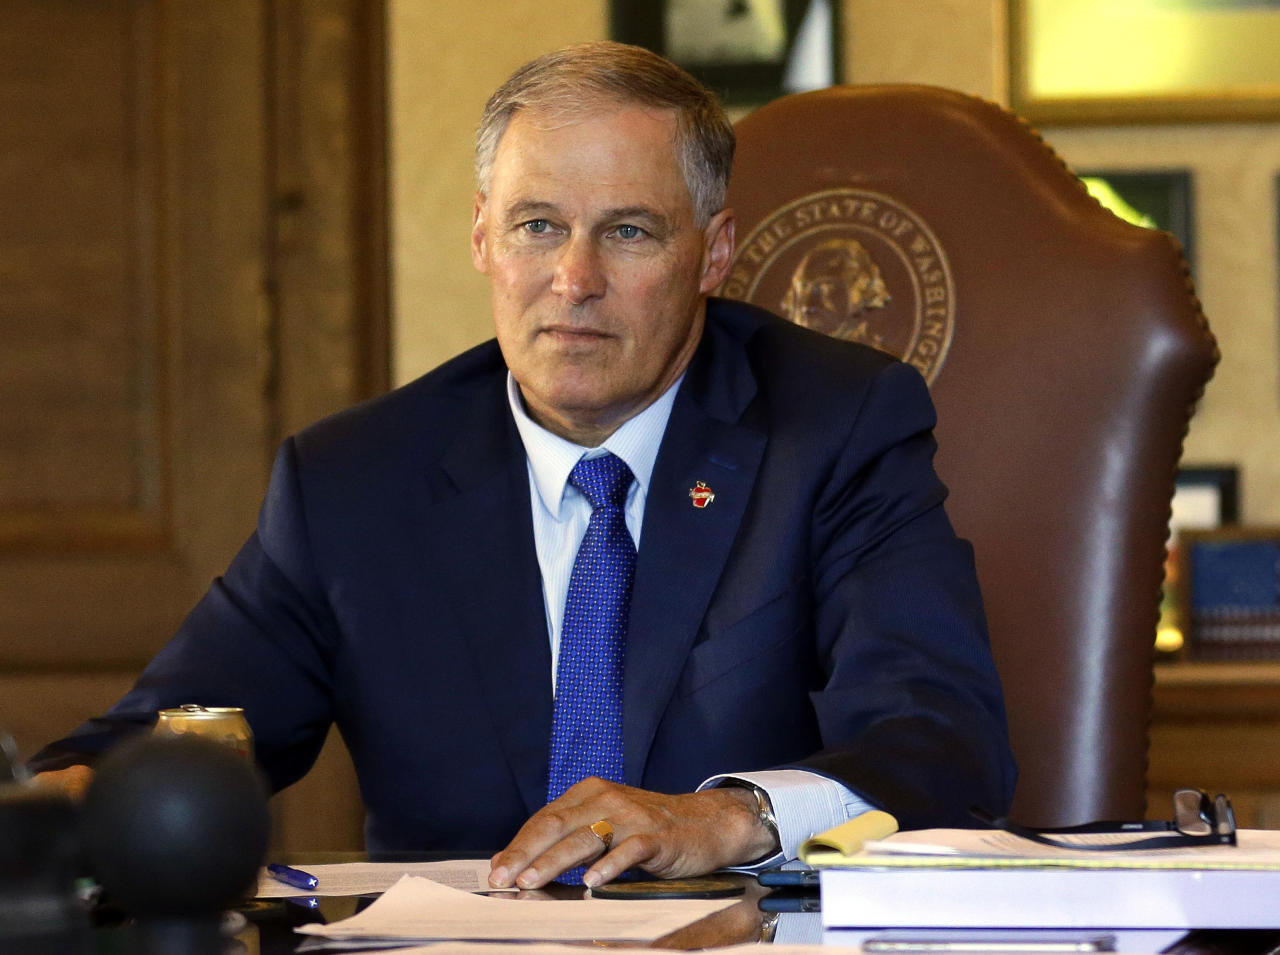 """FILE--In this June 30, 2017, file photo, Washington Gov. Jay Inslee, left, listens as he meets with staff members in his office as they review the state operating budget passed by the Legislature earlier in the day at the Capitol in Olympia, Wash. Inslee, along with Alaska Gov. Bill Walker, is asking the Trump administration to back off when it comes to marijuana and Inslee said Attorney General Jeff Sessions made claims about the situation in Washington that are """"outdated, incorrect, or based on incomplete information.""""(AP Photo/Ted S. Warren, file)"""